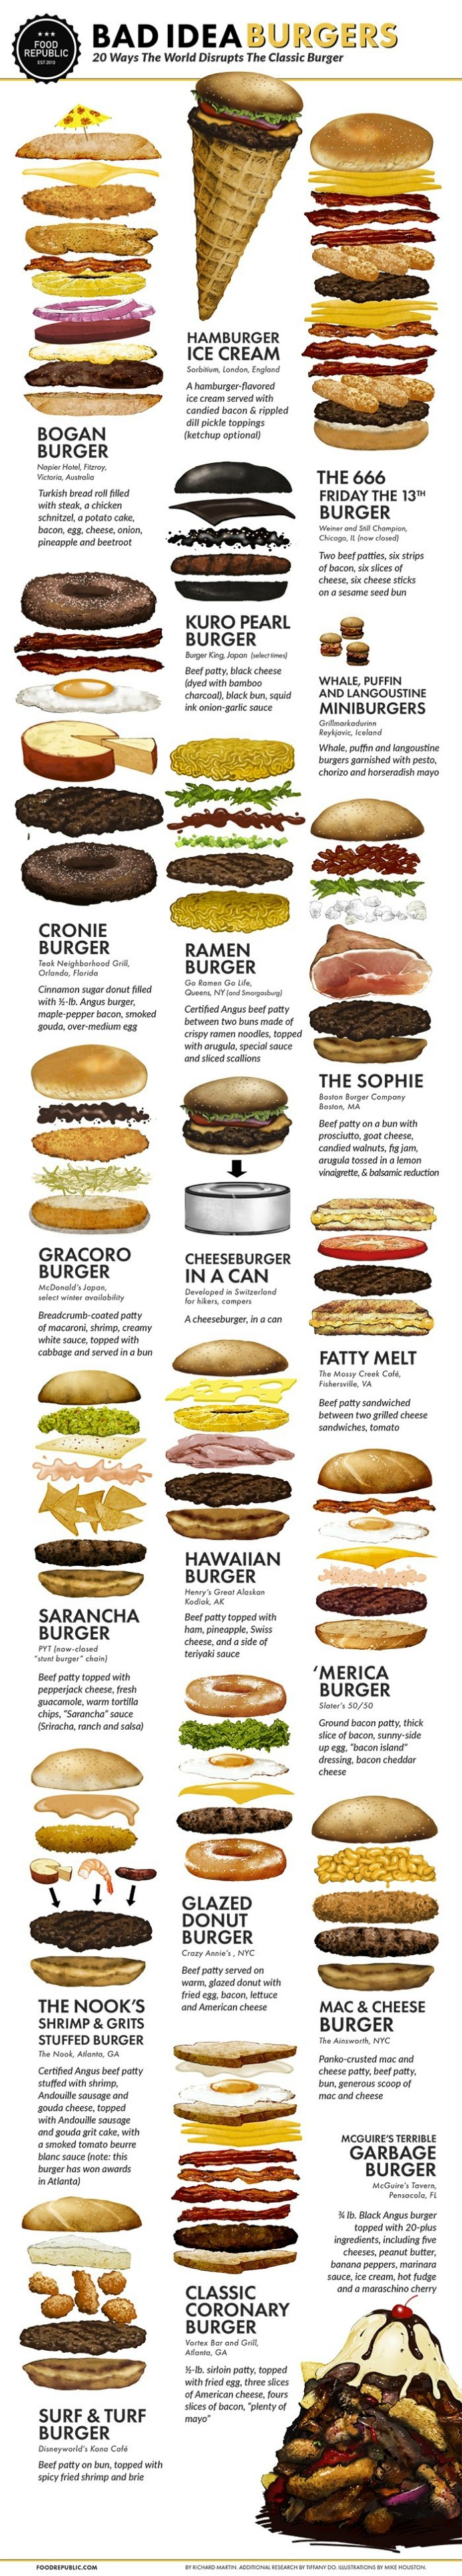 original_bad-idea-burgers-infographic.jpg